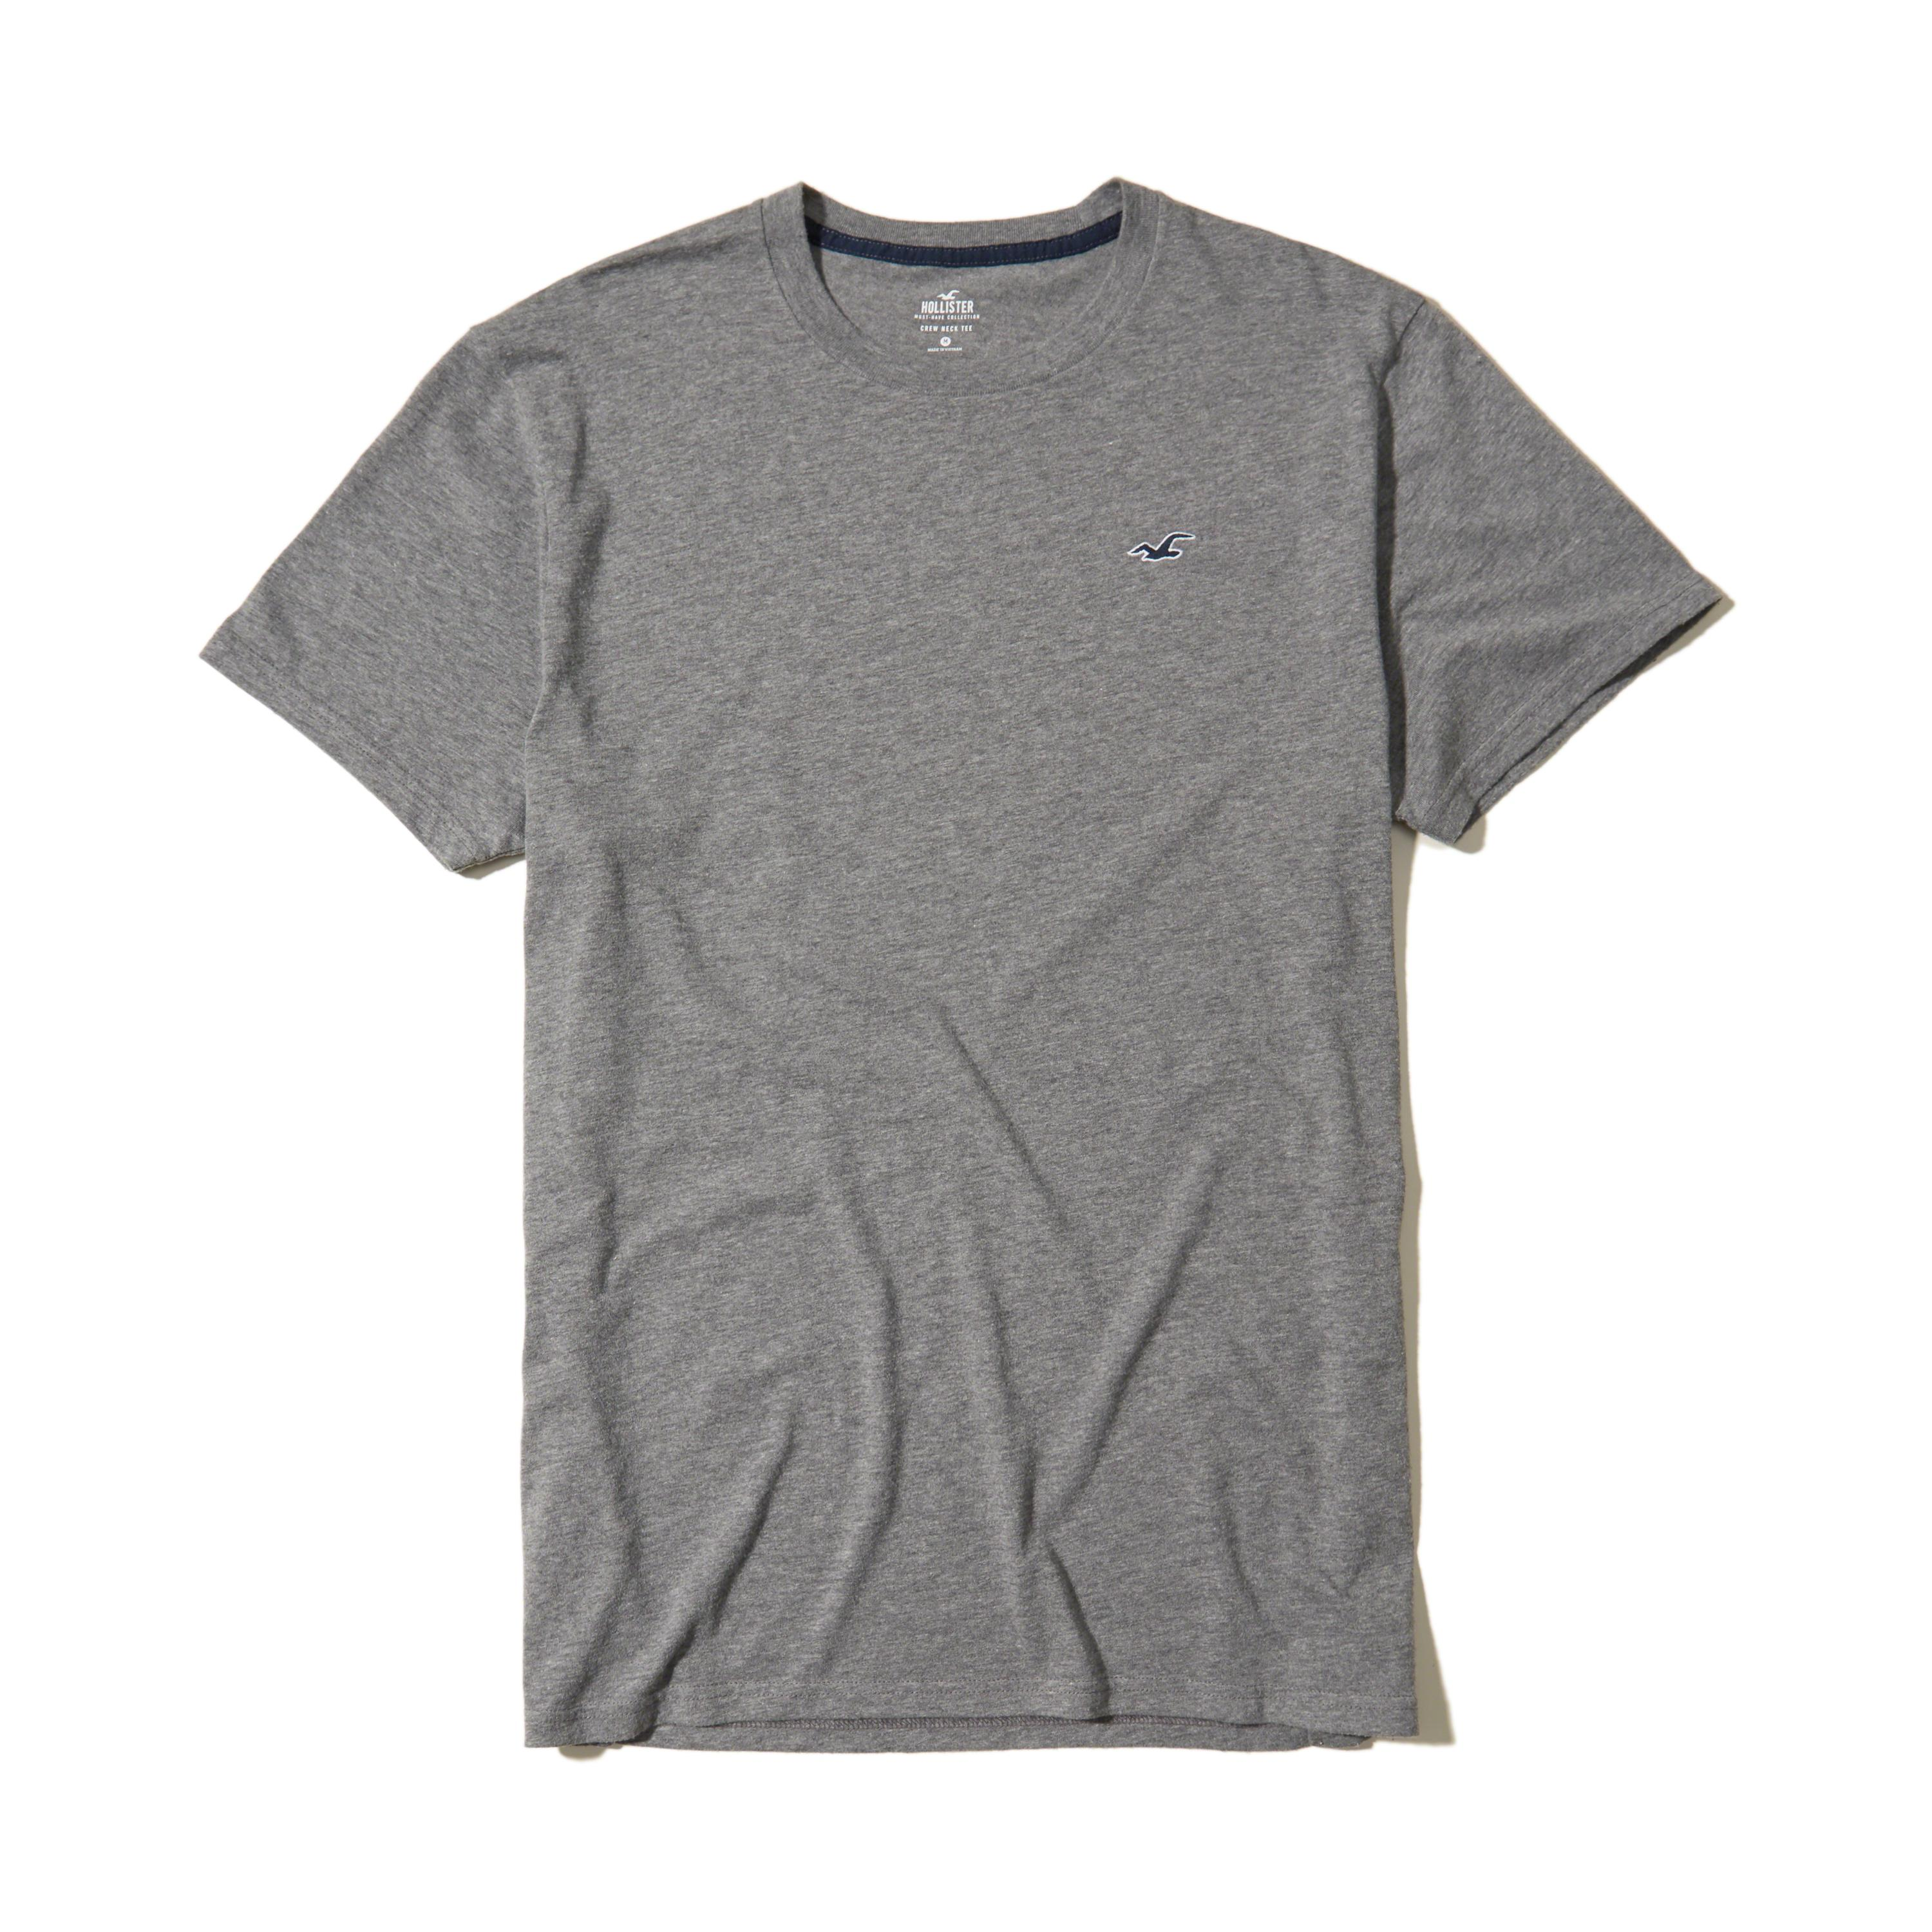 Lyst hollister must have crew t shirt in gray for men for Must have dress shirts